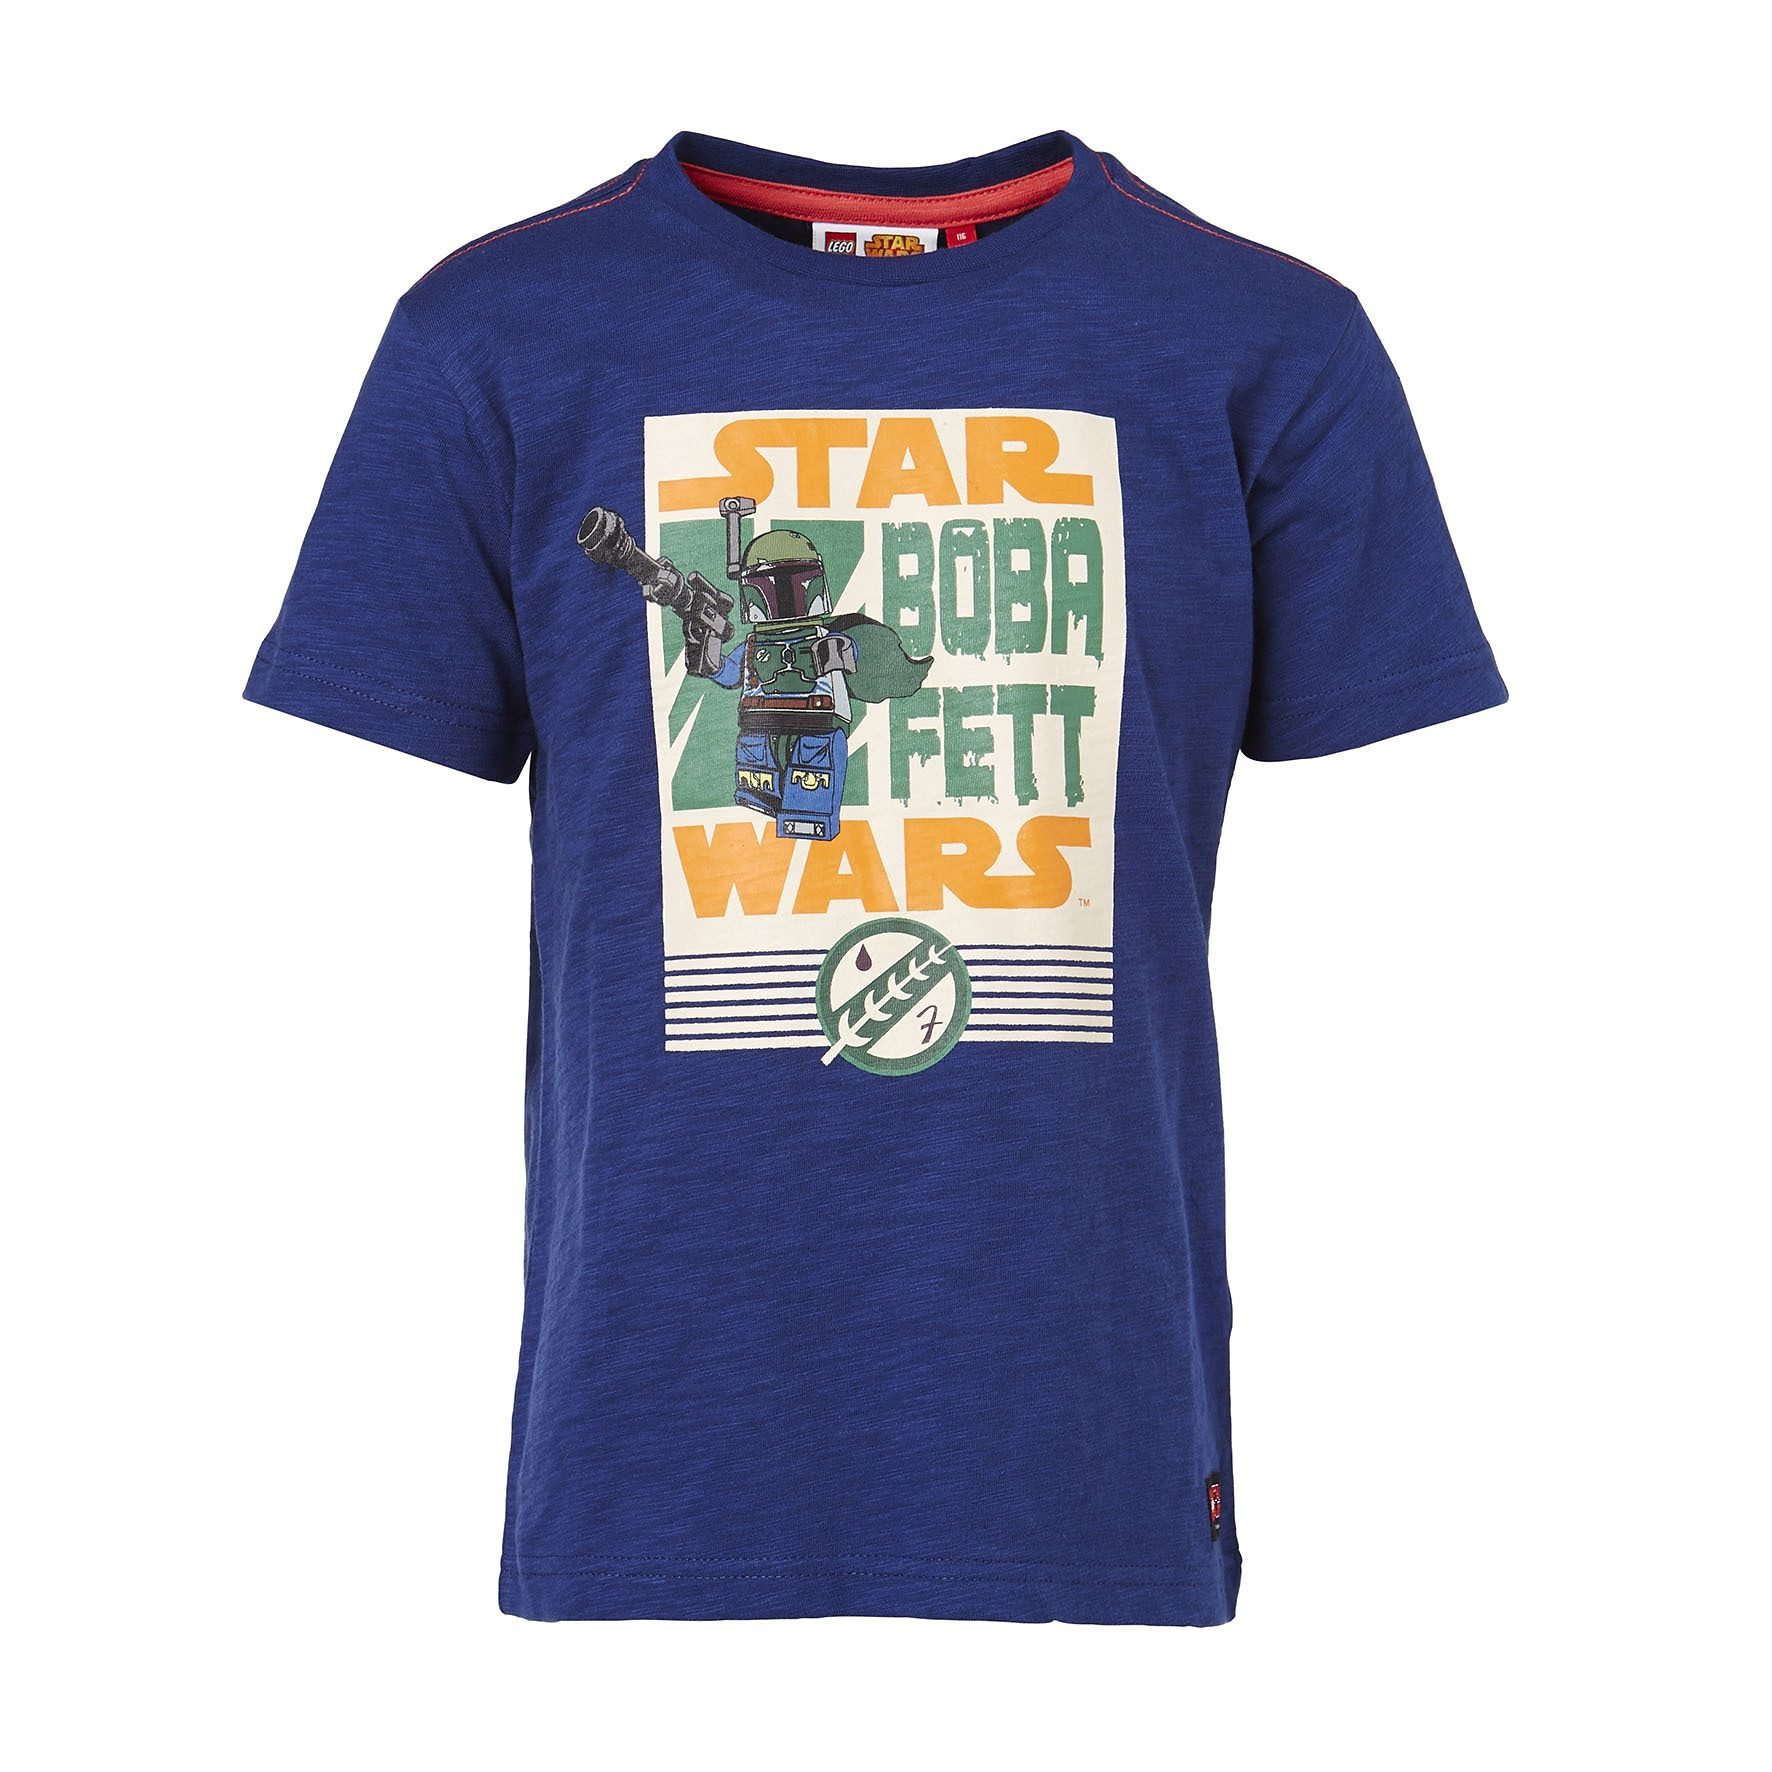 "LEGO Wear STAR WARS(TM) Kurzarm-T-Shirt Timmy ""Boba Fett"" Shirt"